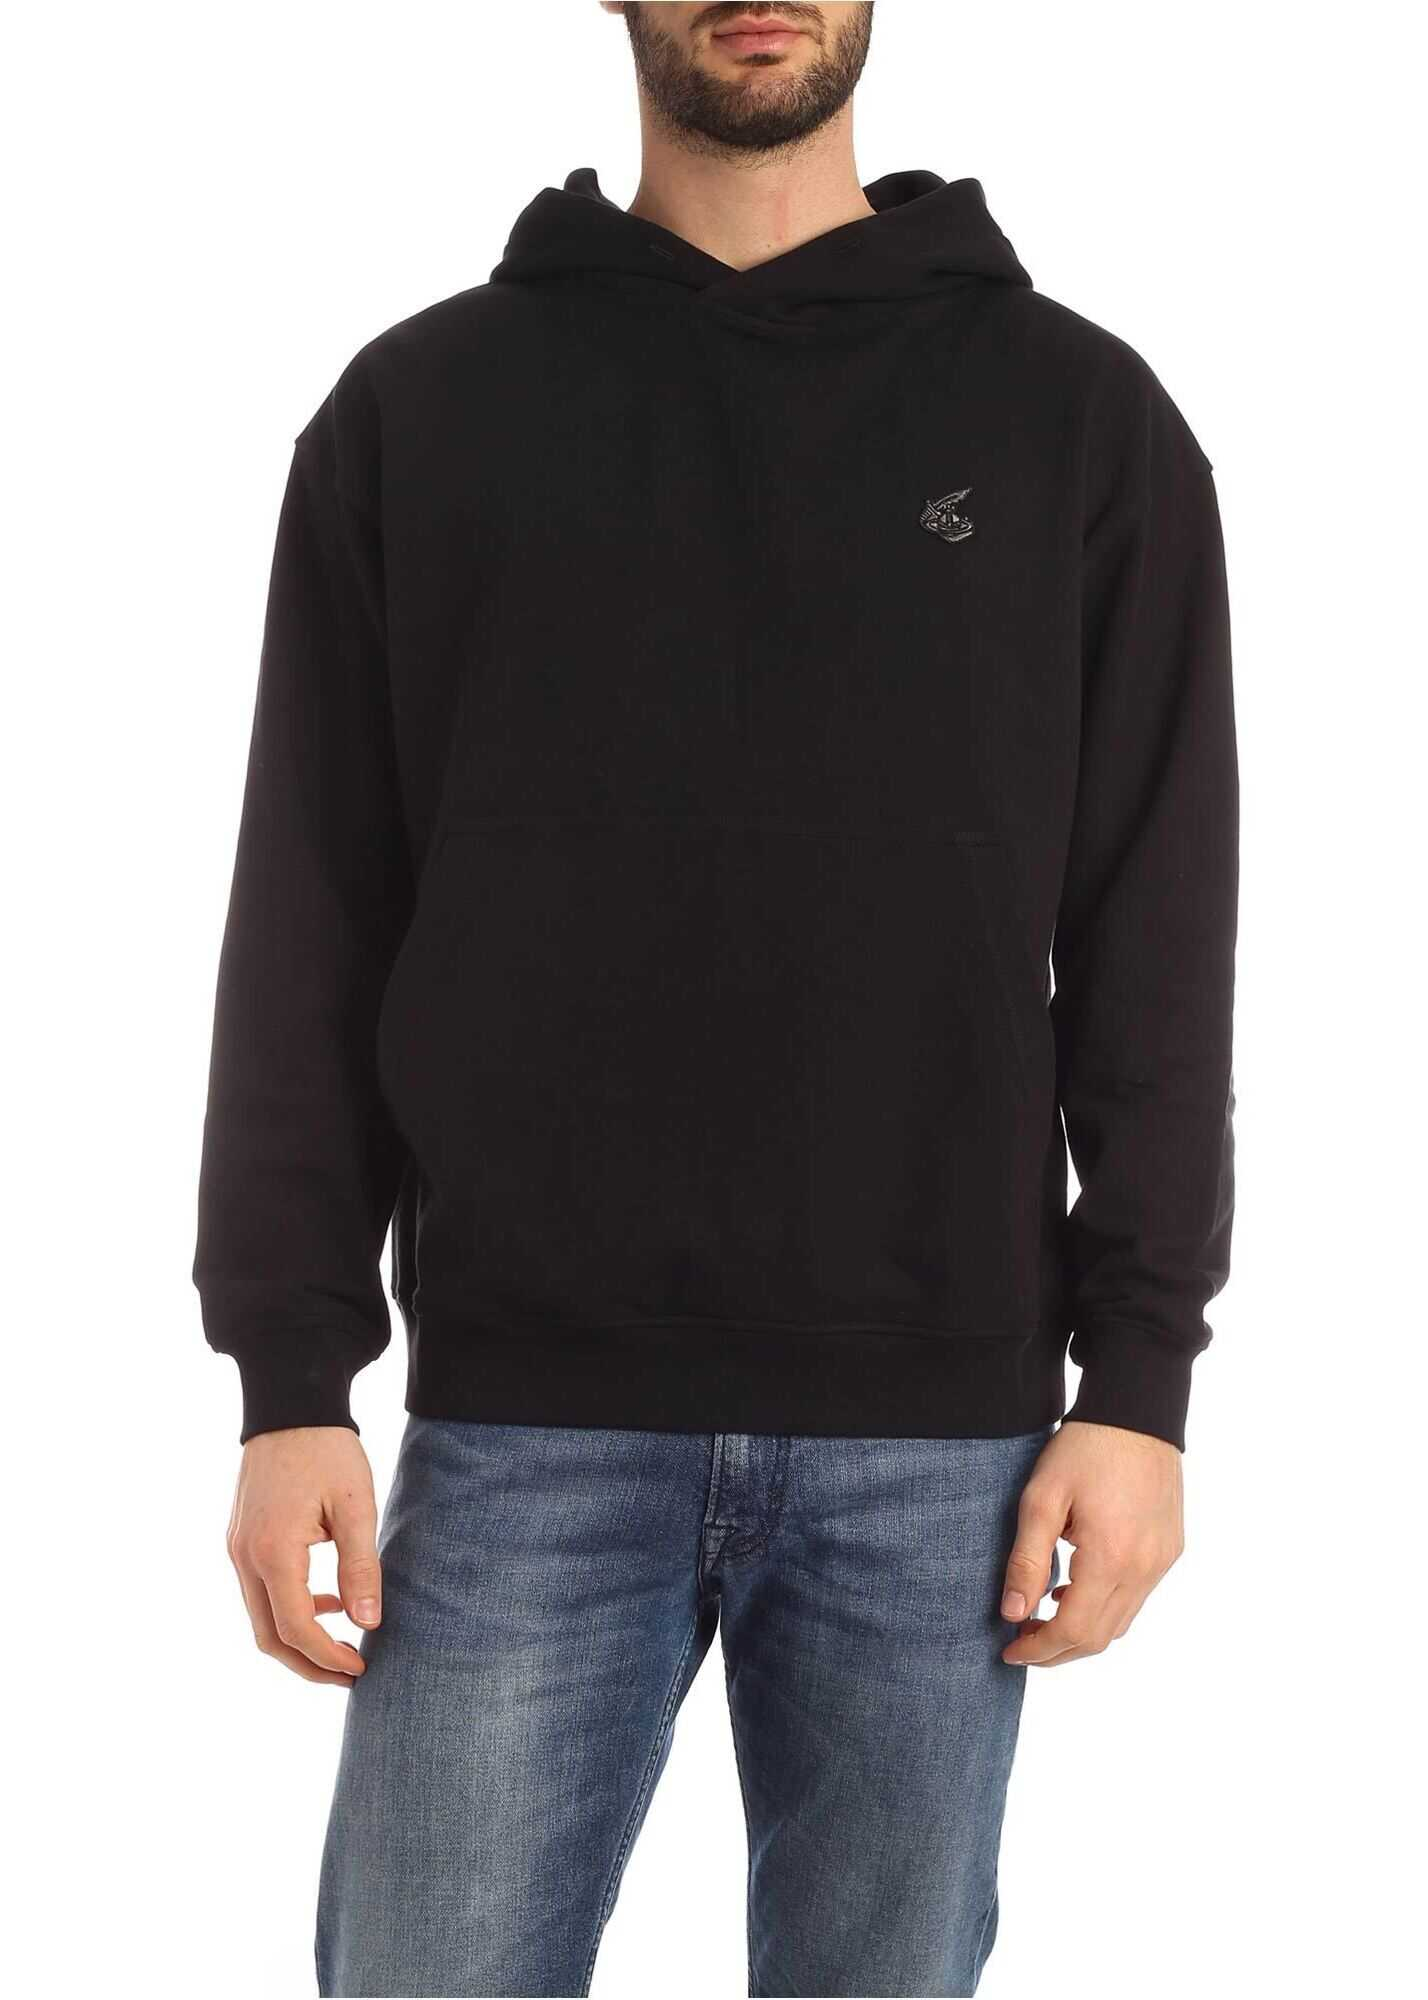 Vivienne Westwood Anglomania Arm And Cutlass Orb Logo Sweatshirt In Black Black